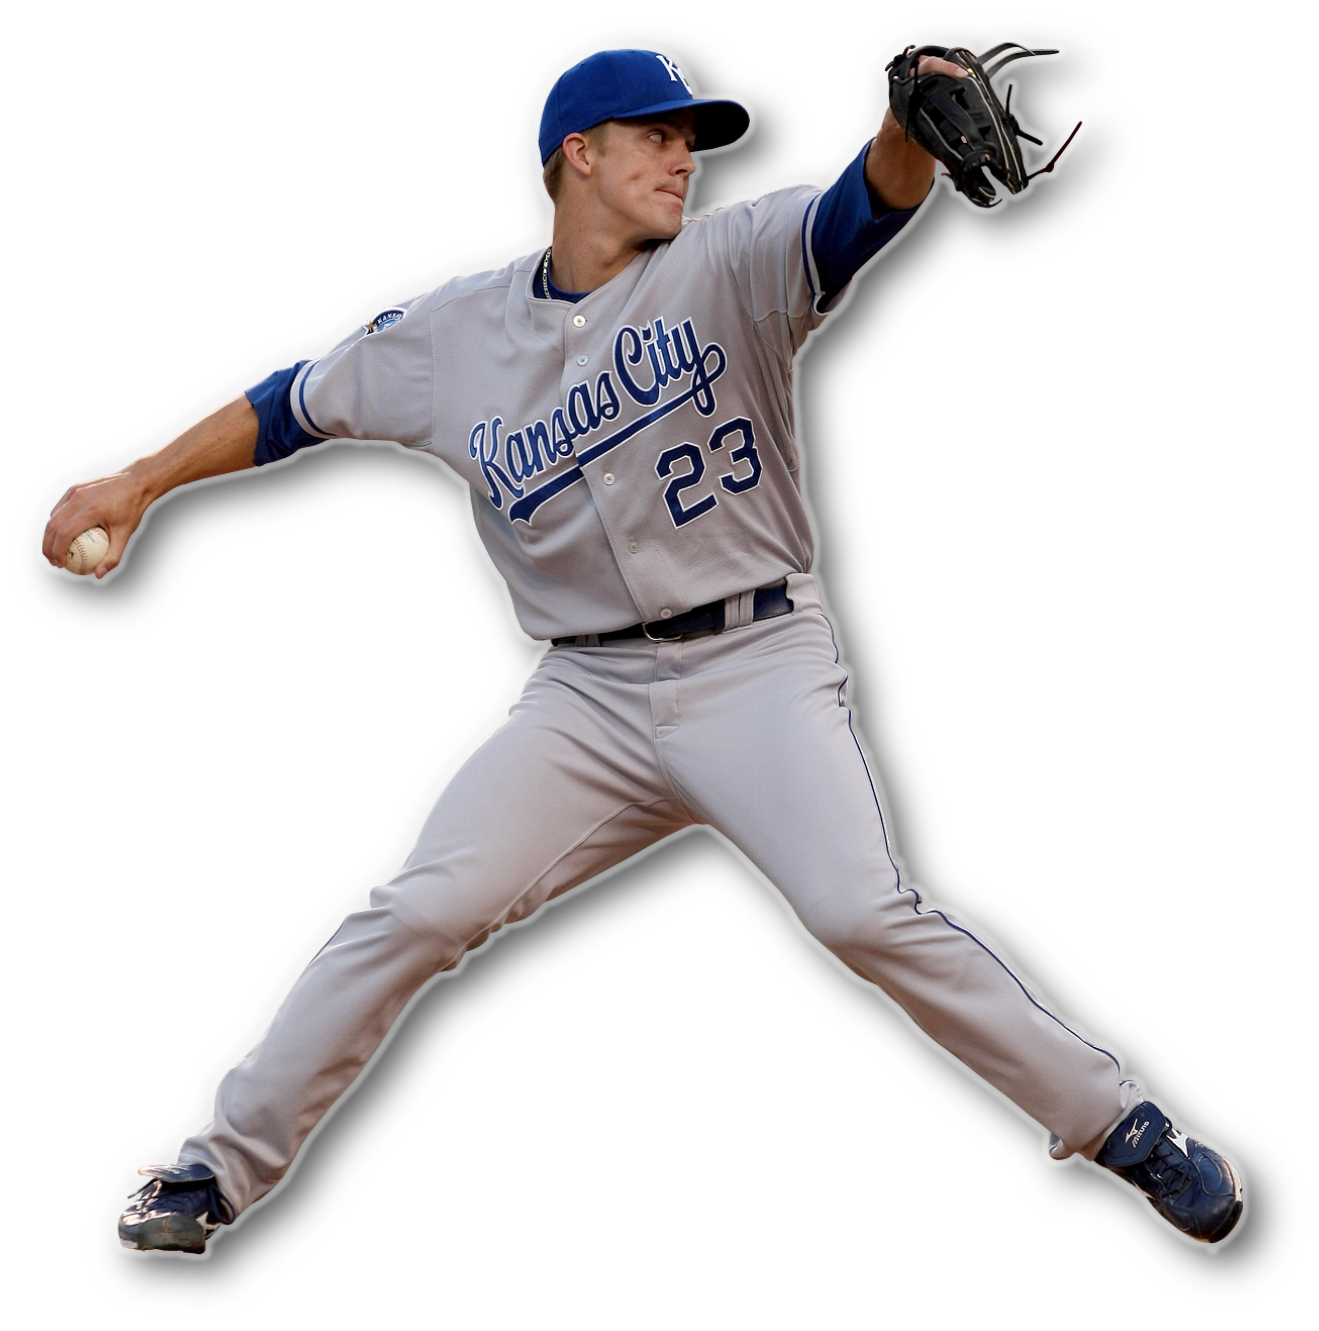 Baseball pitcher png. Icon web icons picture